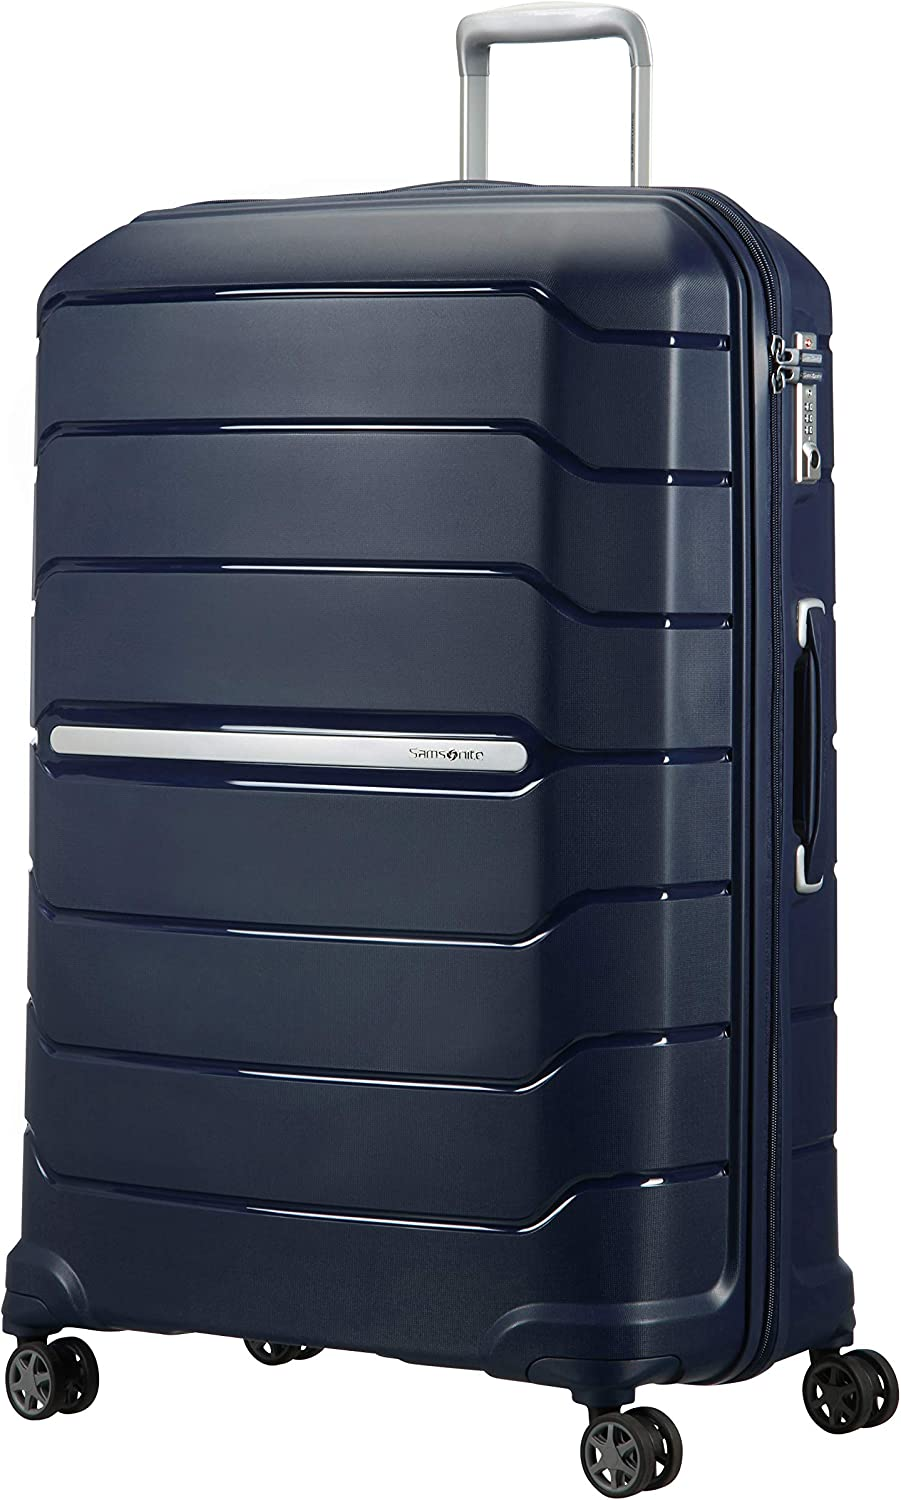 Samsonite Flux Spinner XL Maleta Expansible, 81 cm, 136 L, Azul (Navy Blue)